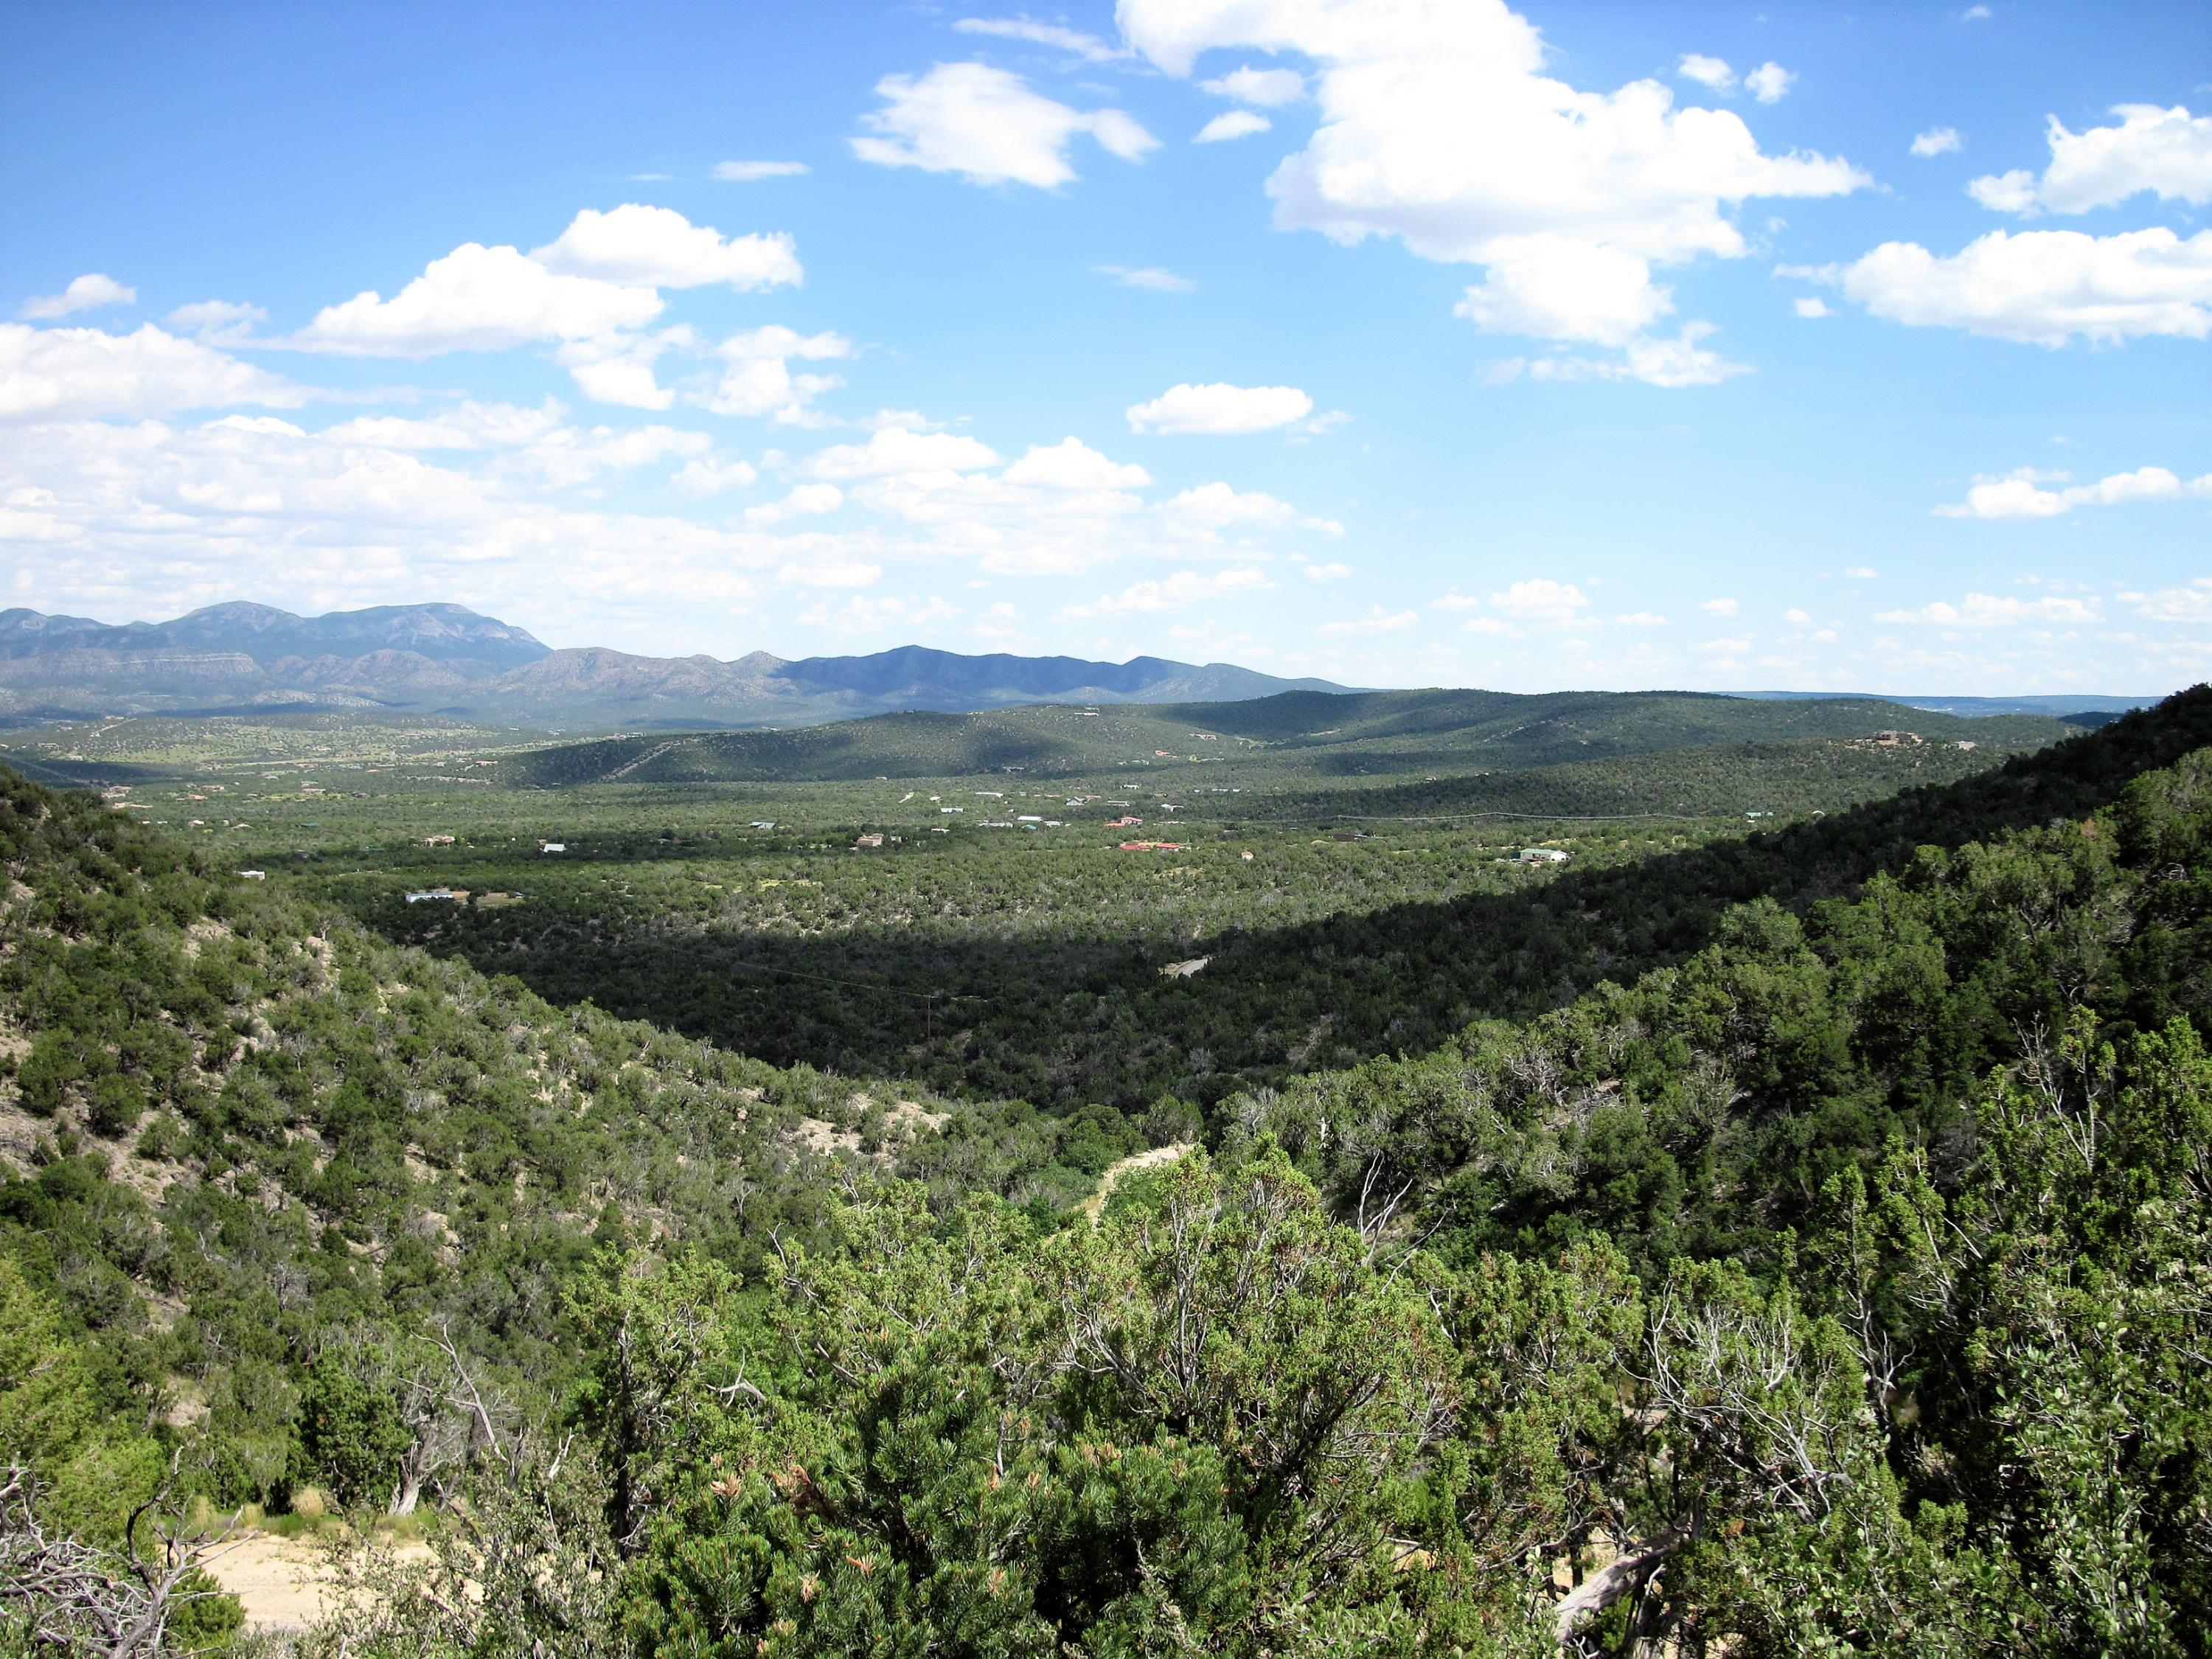 80 SKYLINE HEIGHTS Court Property Photo - Sandia Park, NM real estate listing